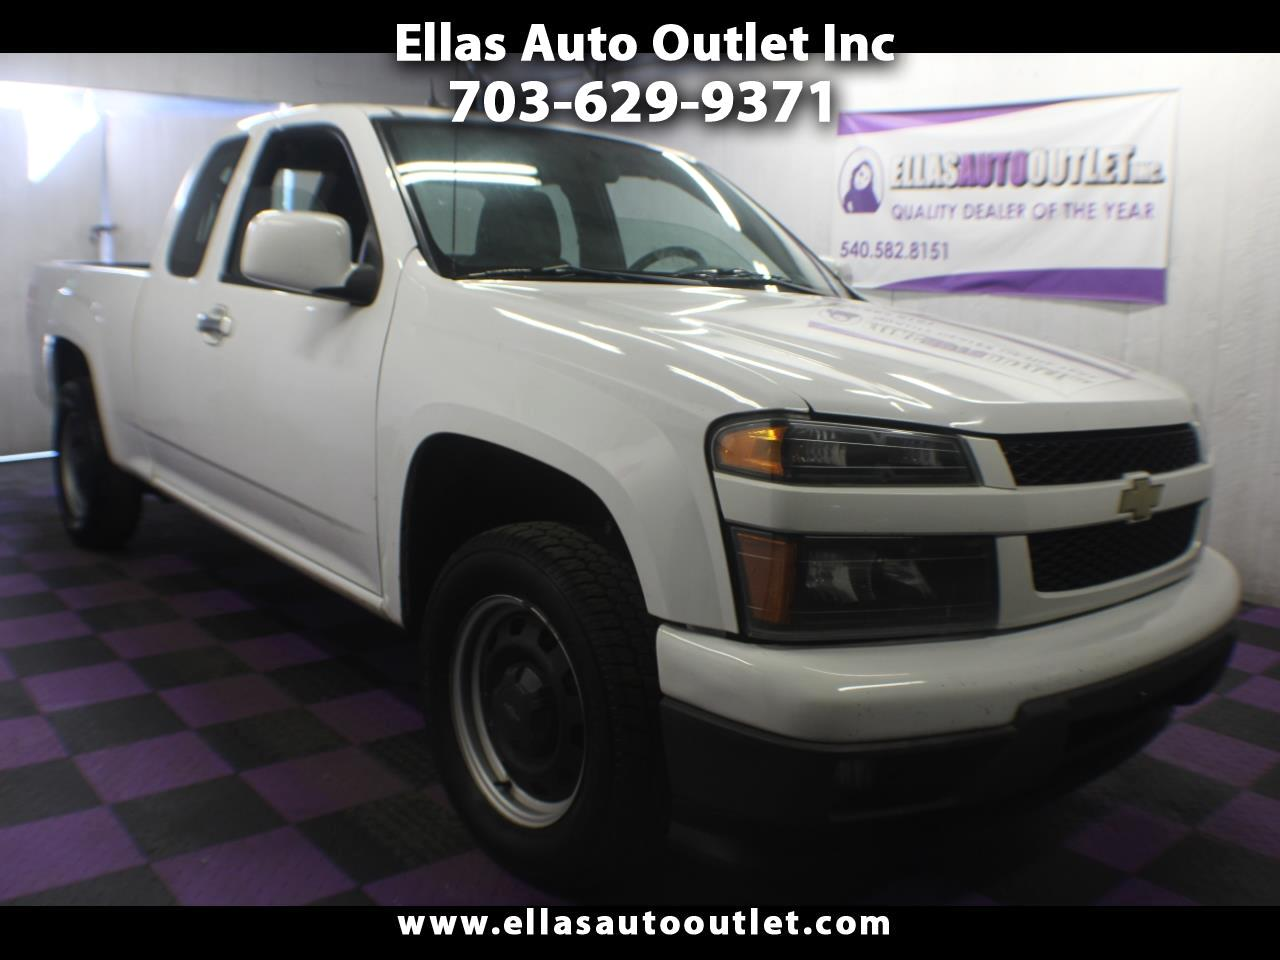 2012 Chevrolet Colorado 2WD EXT CAB